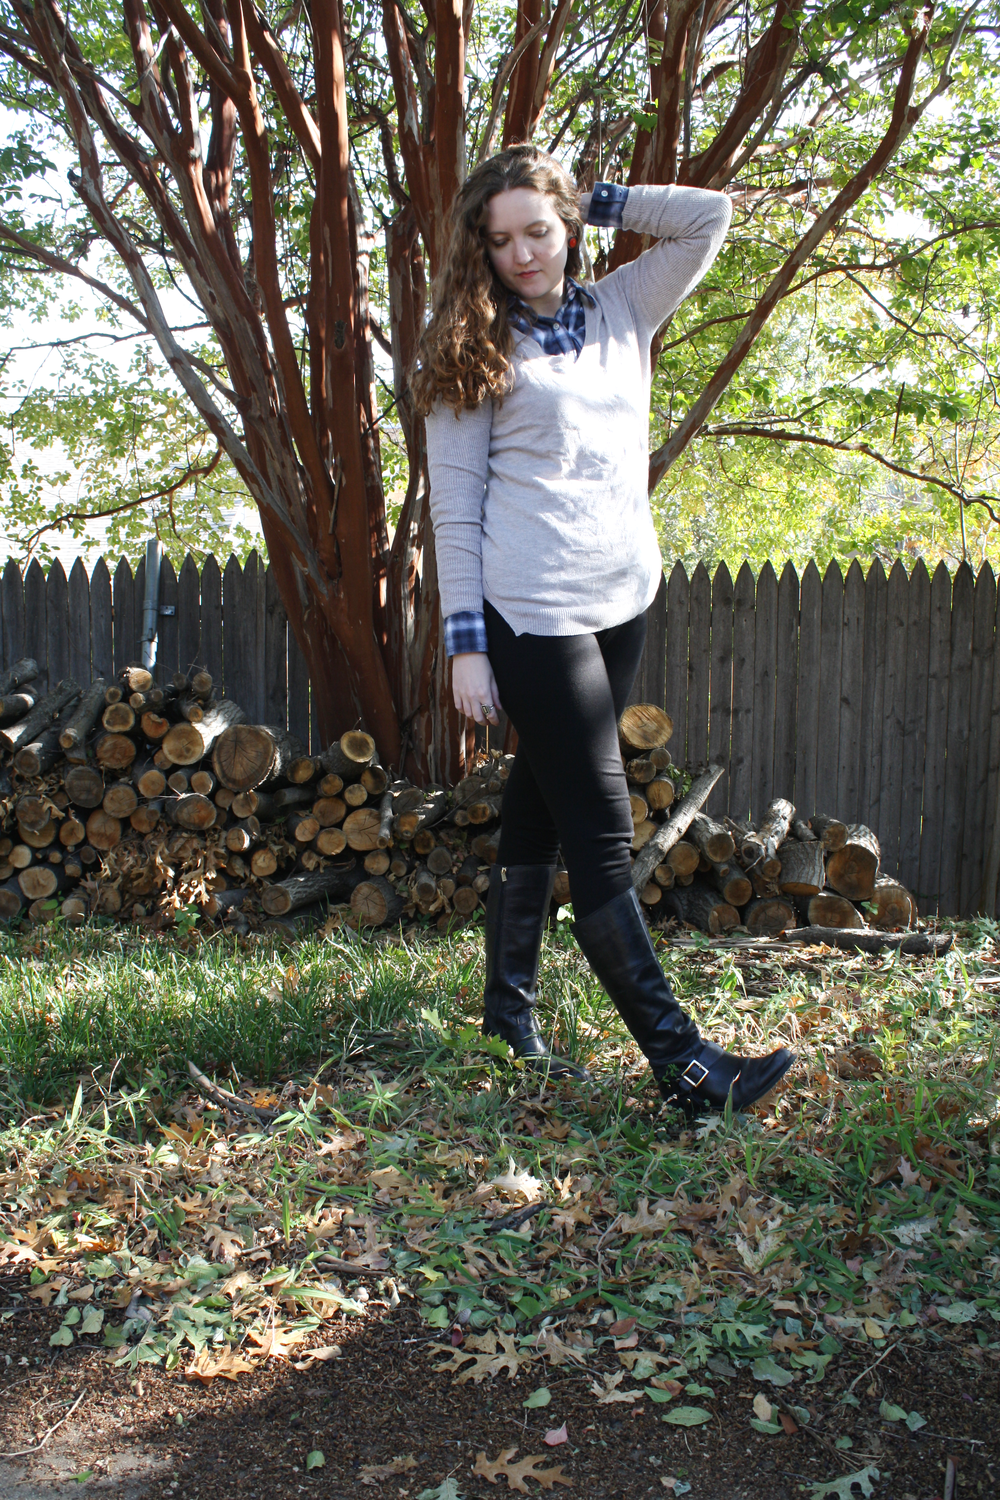 Pretend equestrian strikes again with Vince Camuto boots + leggings